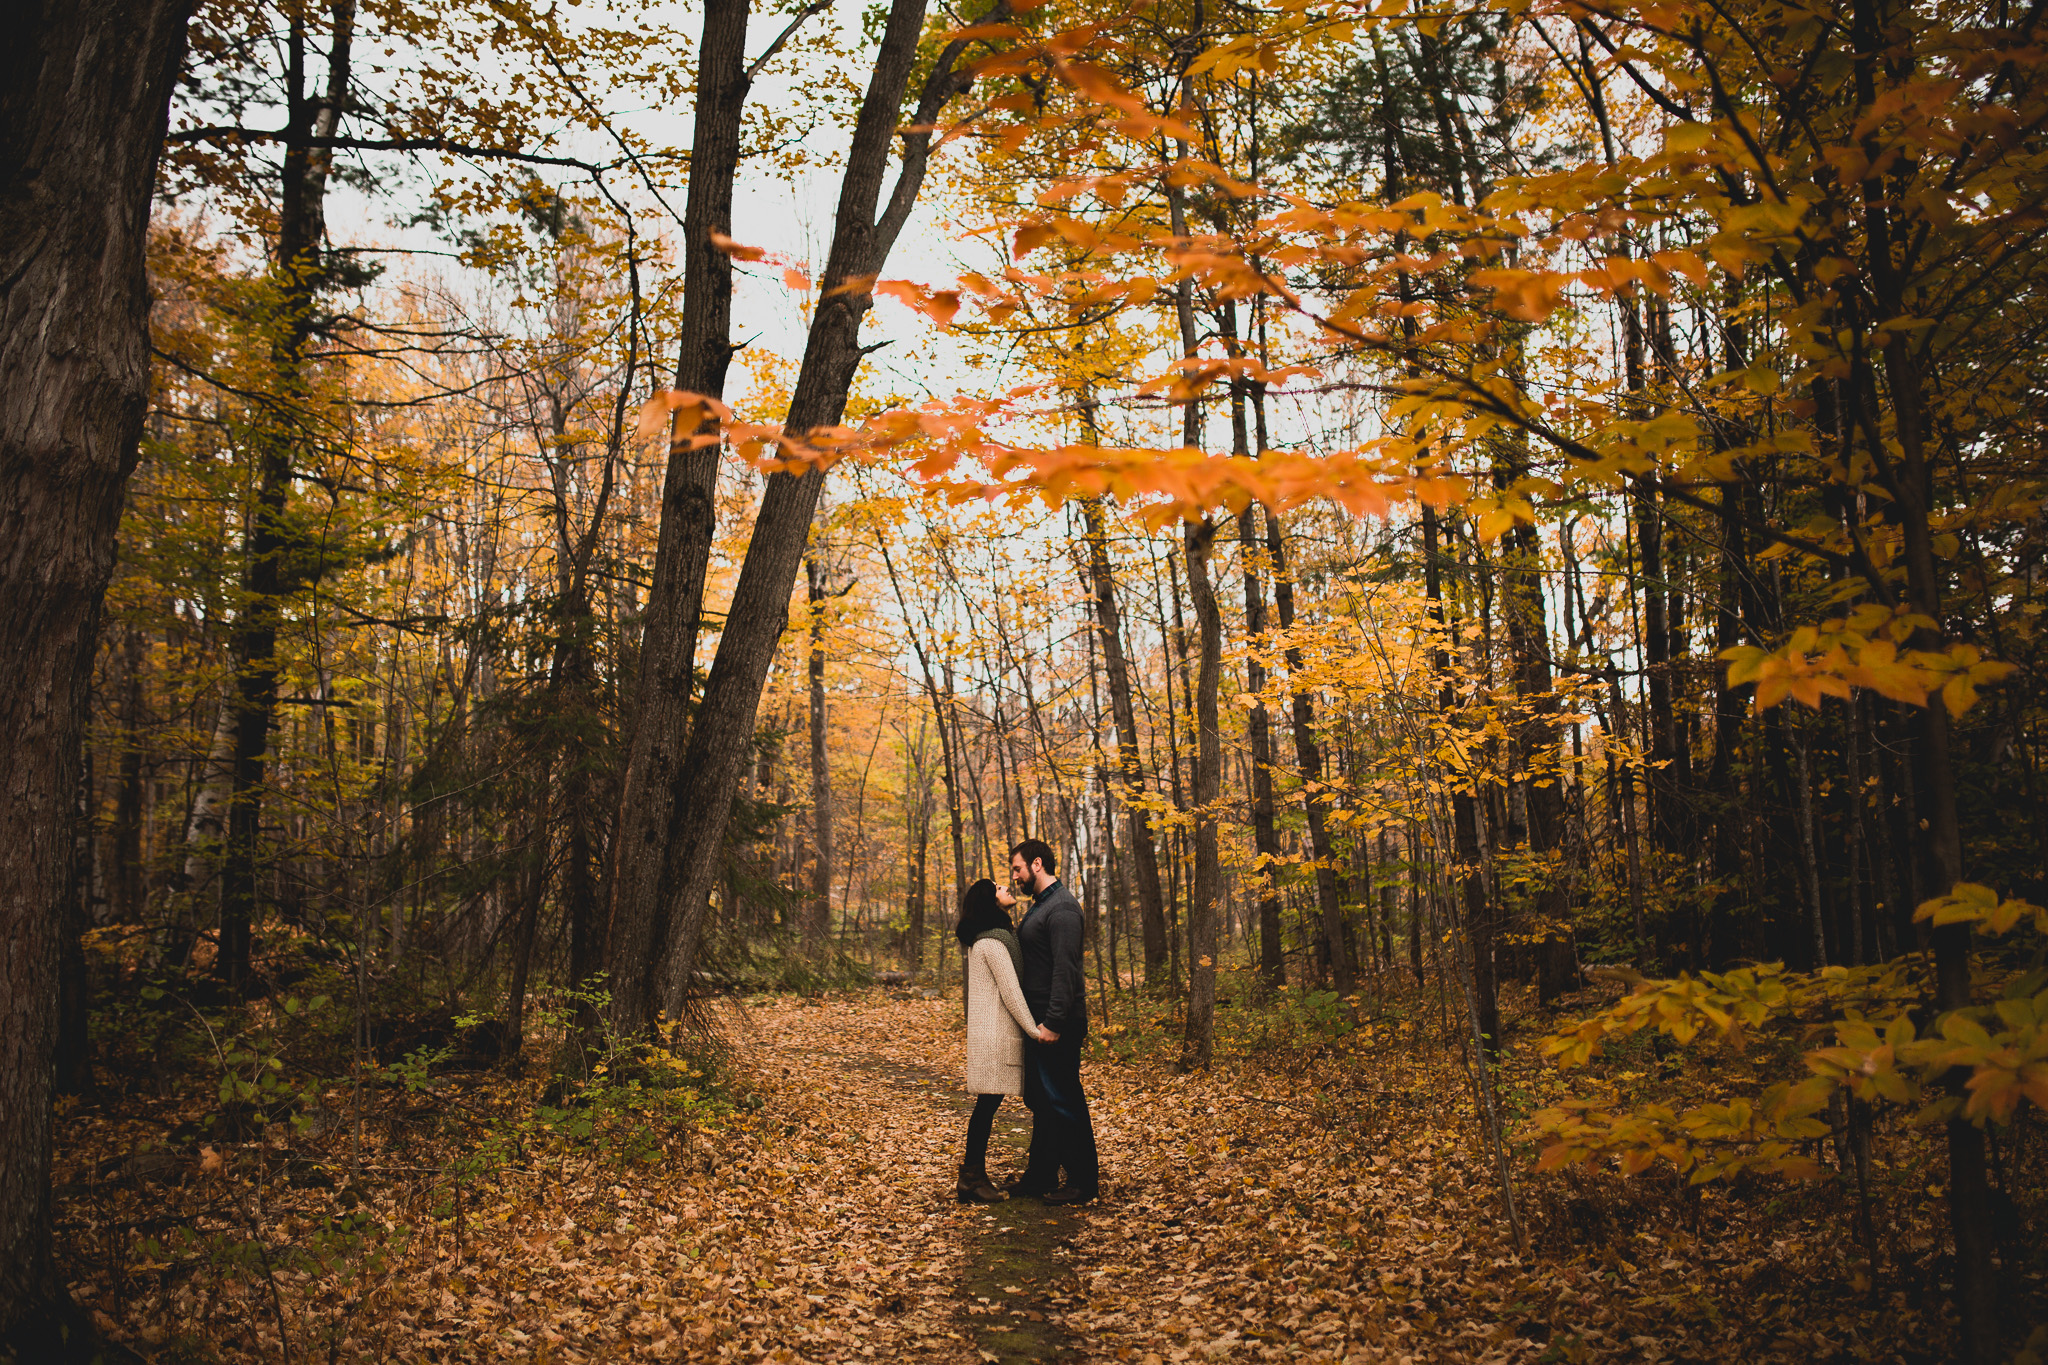 Fall Portraits in colourful ontario trees